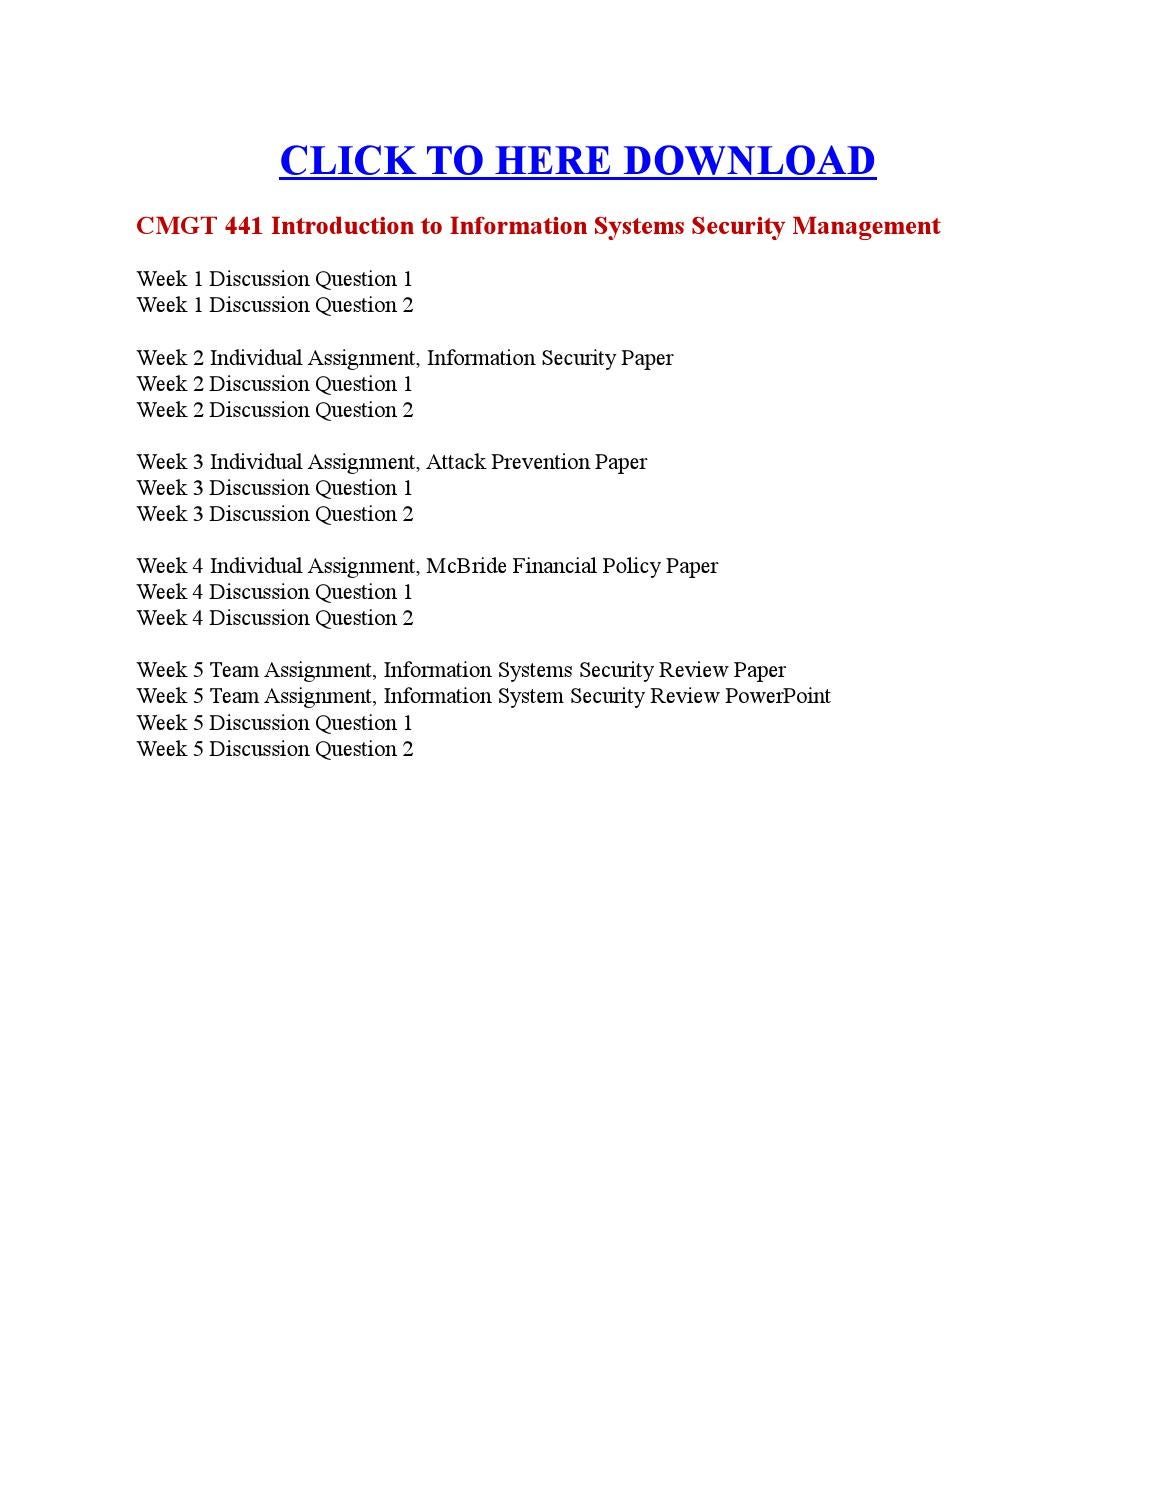 cmgt 441 week 2 information security paper Cmgt 413 week 1 individual assignment competitive advantage paper instructions: the changing business environment requires organizations to find creative ways to compete with others in their industry, both at home and globally.